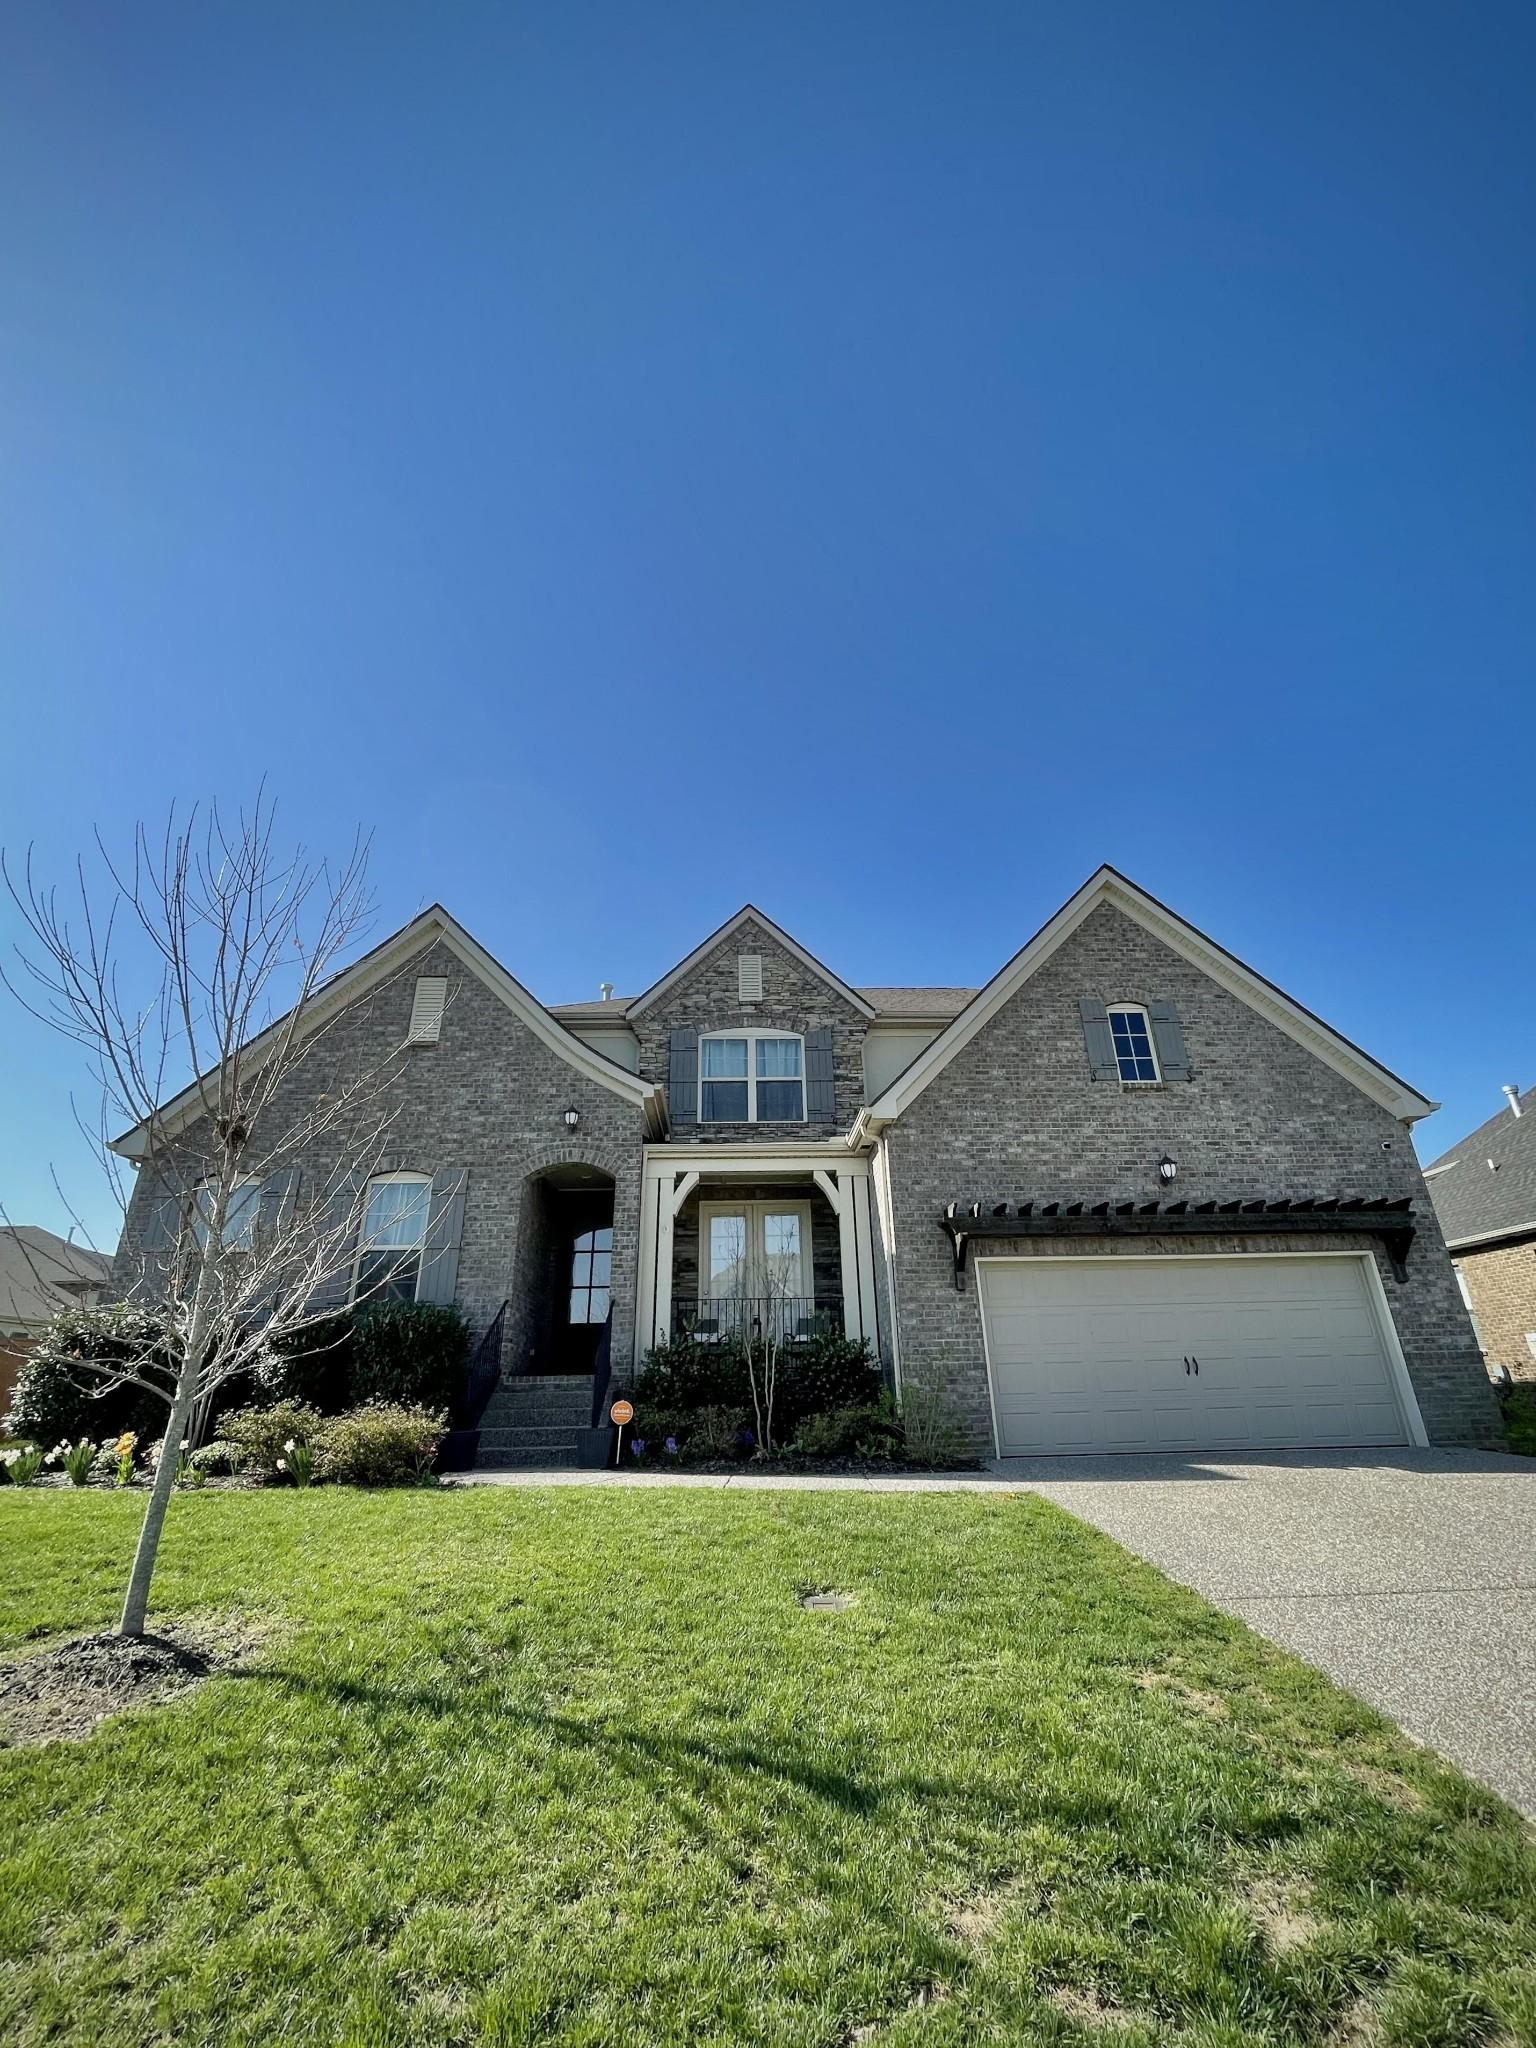 742 Burgess Dr Property Photo - Goodlettsville, TN real estate listing